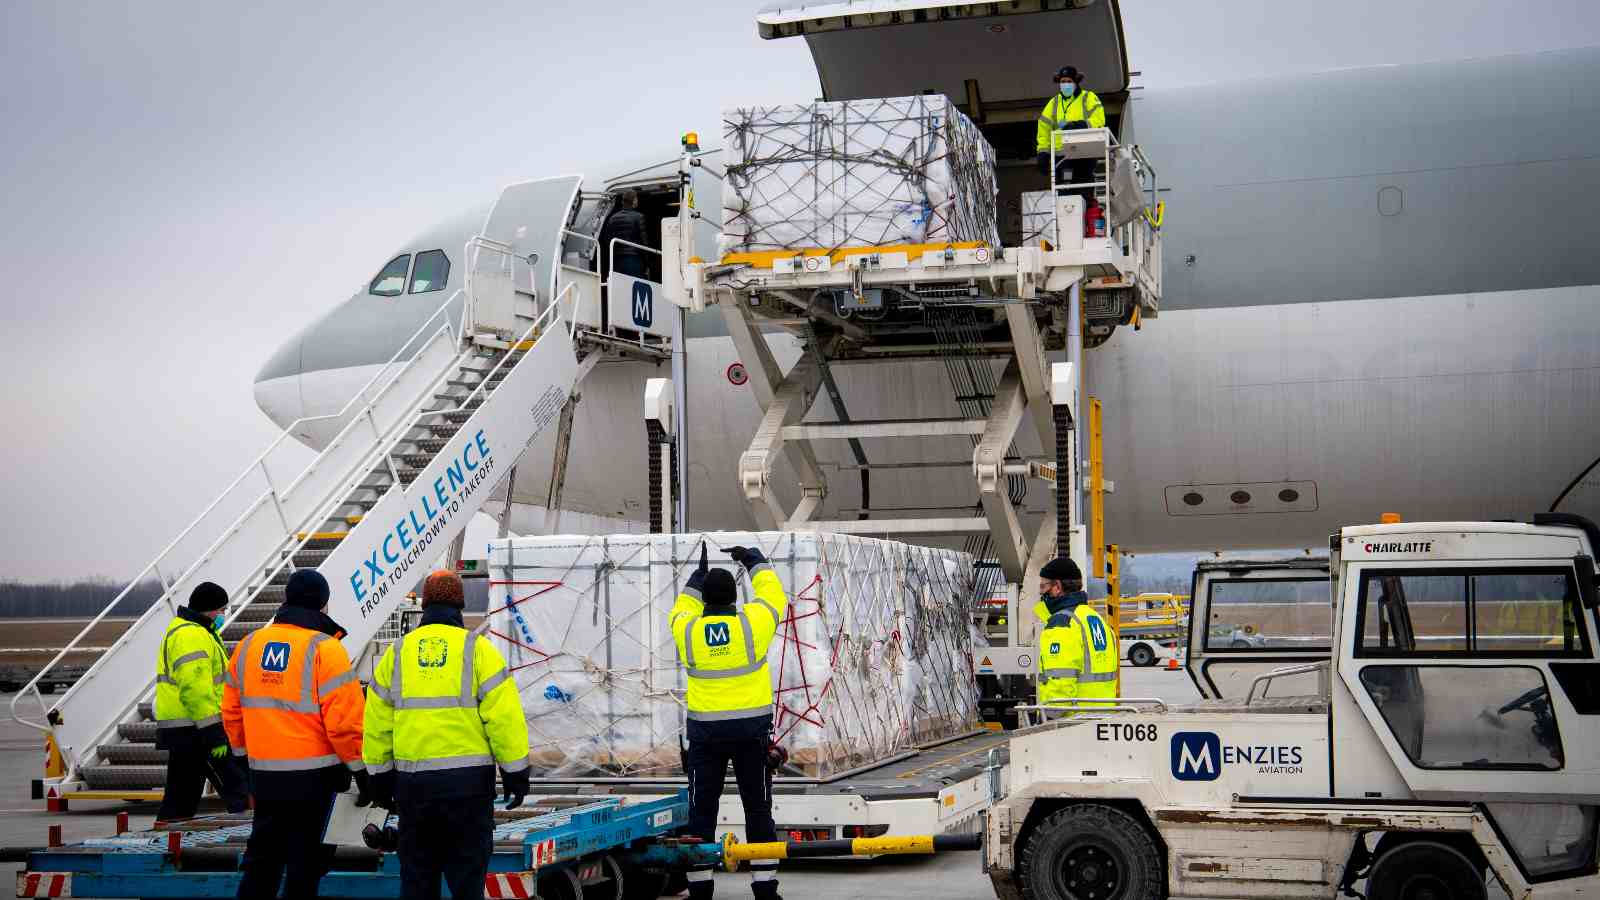 Photo: Workers unload a shipment of Chinese Sinopharm's coronavirus disease (COVID-19) vaccine as it arrives at Budapest Airport, Hungary, February 16, 2021. Credit: Ministry of Foreign Affairs and Trade (KKM)/Handout via REUTERS